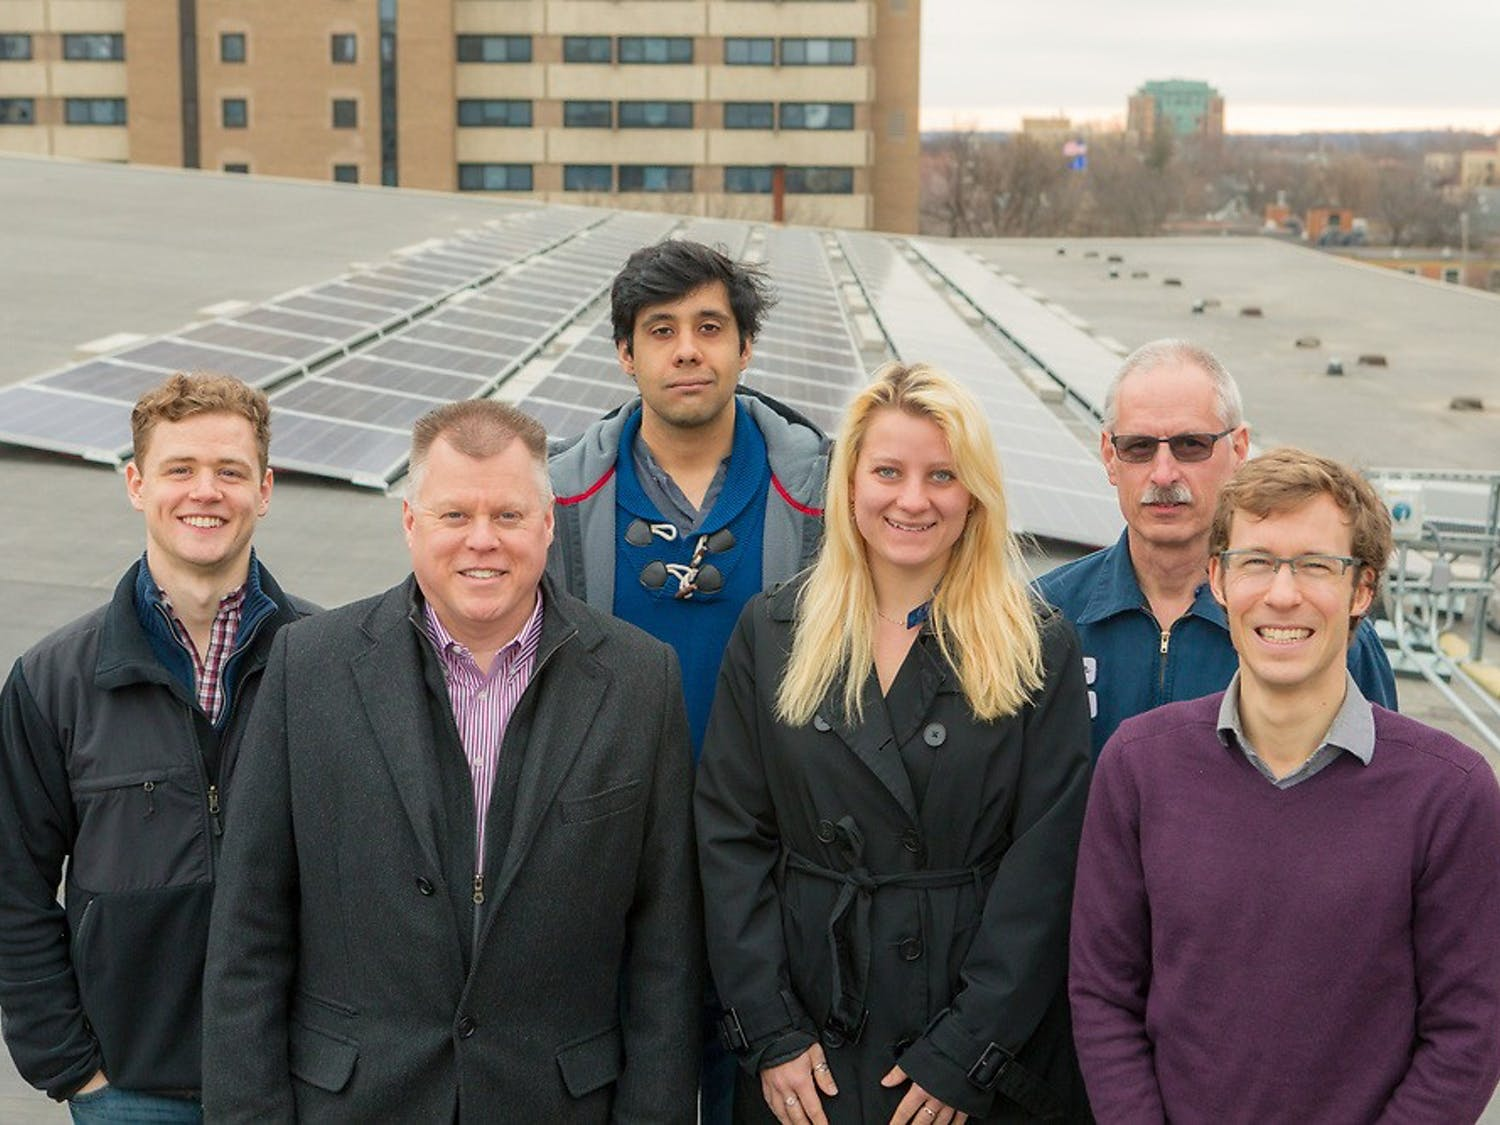 UW-Madison students collaborated with university officials to implement solar panels on the roof of Gordon Dining and Event Center.